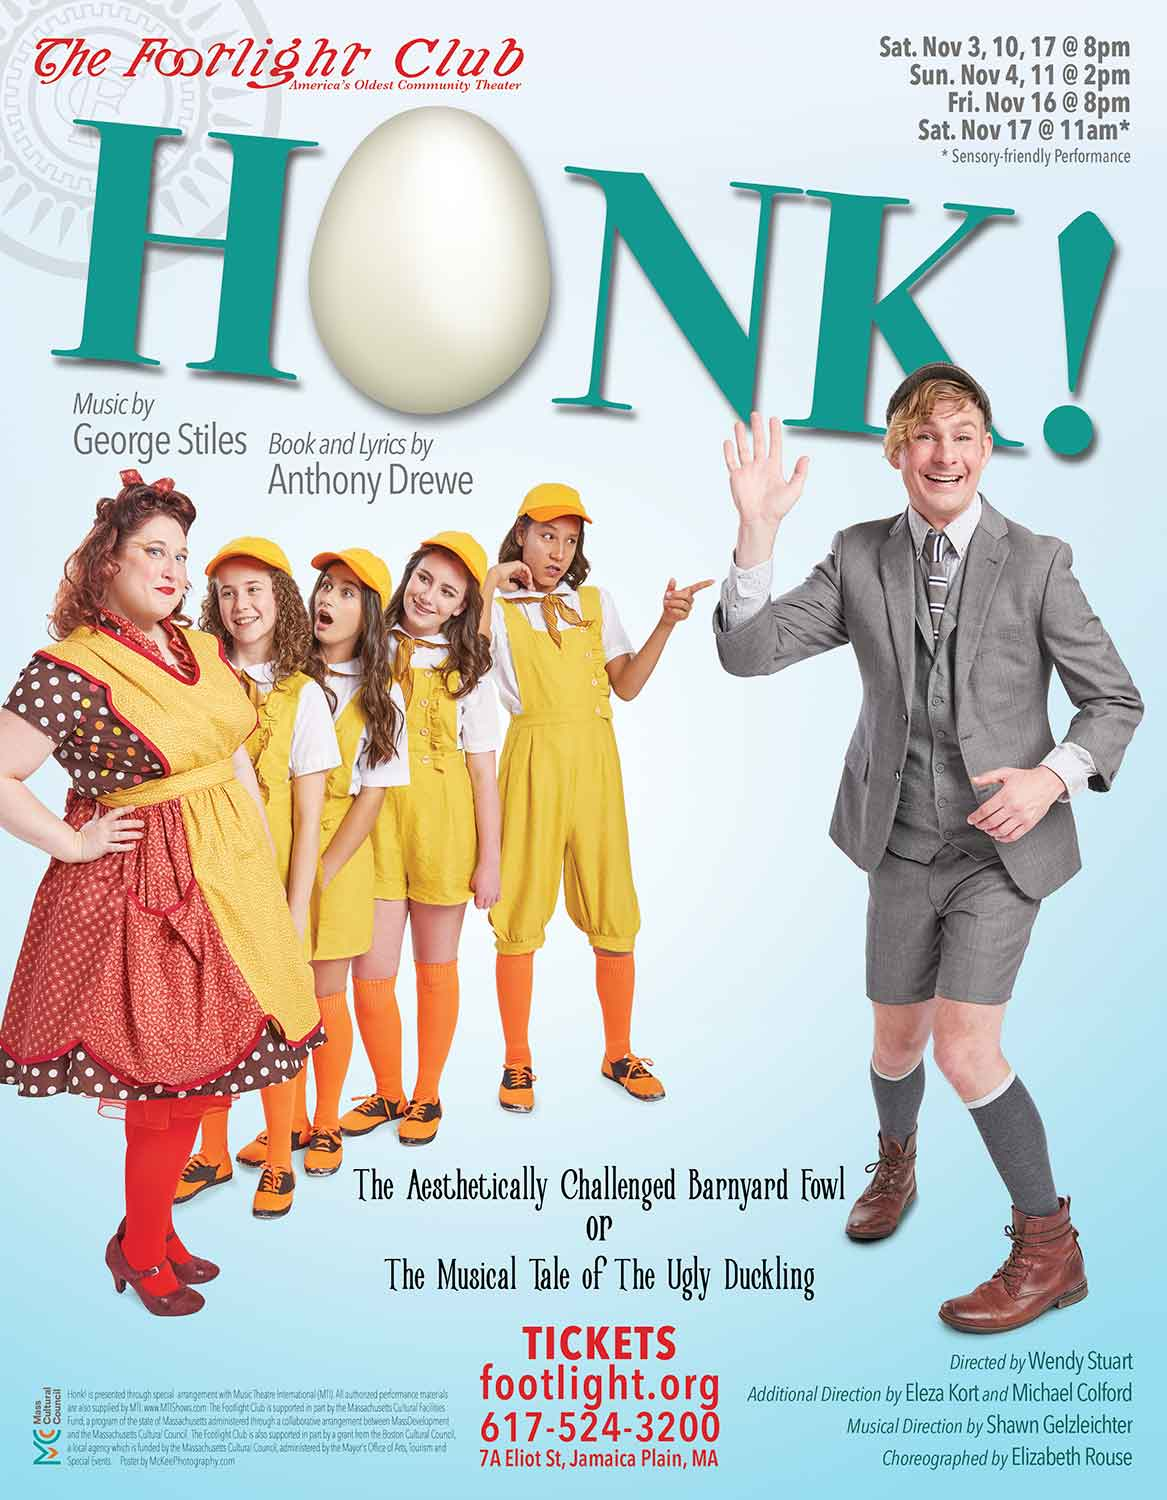 Honk! poster for the Footlight Club.